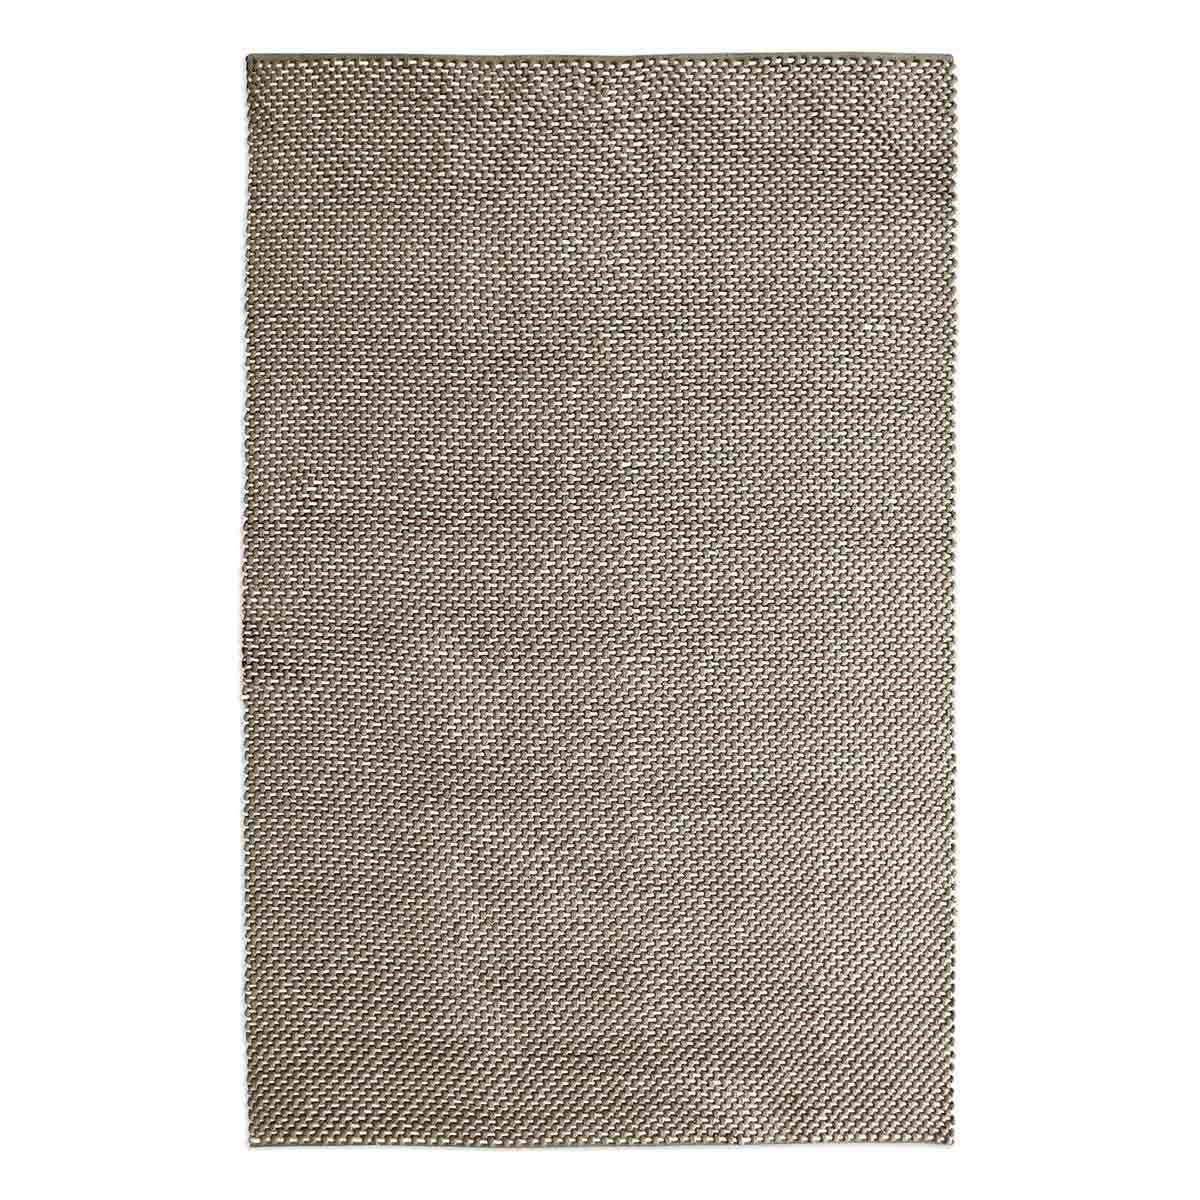 Uttermost Cordero 9 x 12 Rug - Taupe